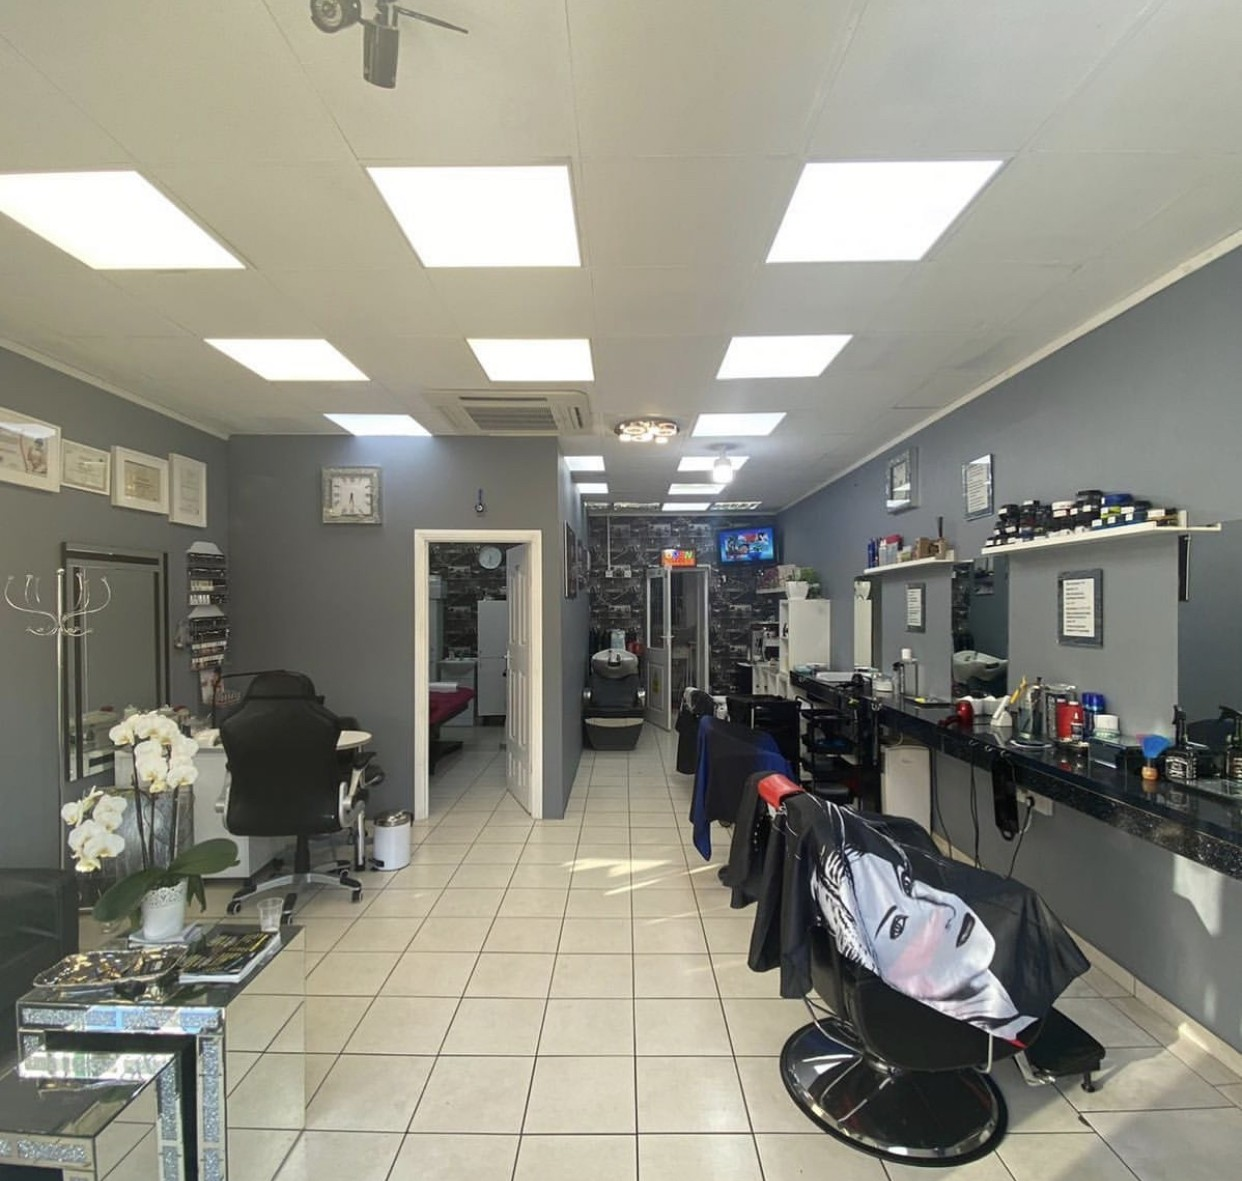 Barbers Business for sale - Image 1